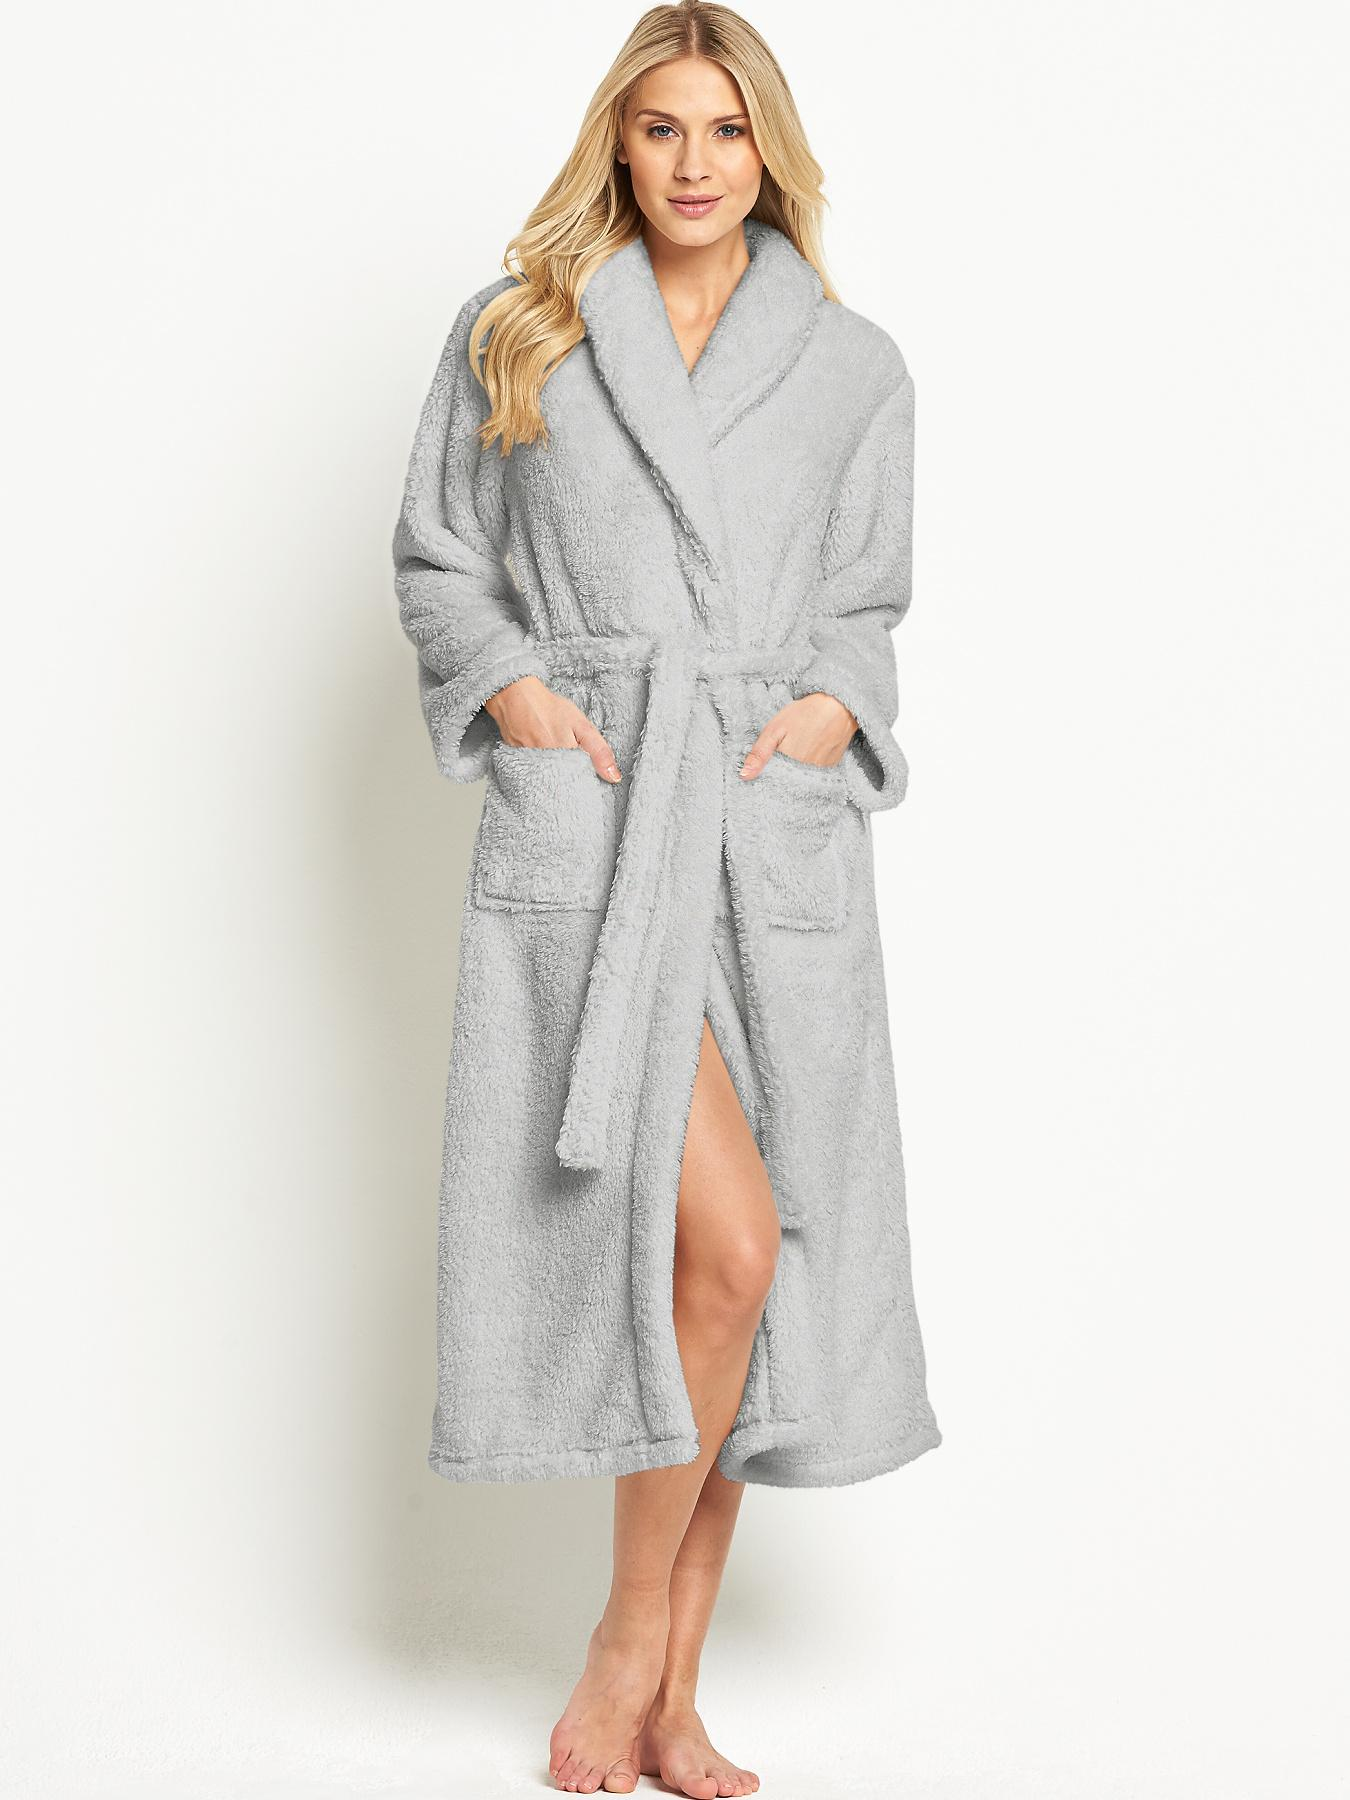 Sorbet Super Soft Dressing Gown - Grey, Grey,Blue